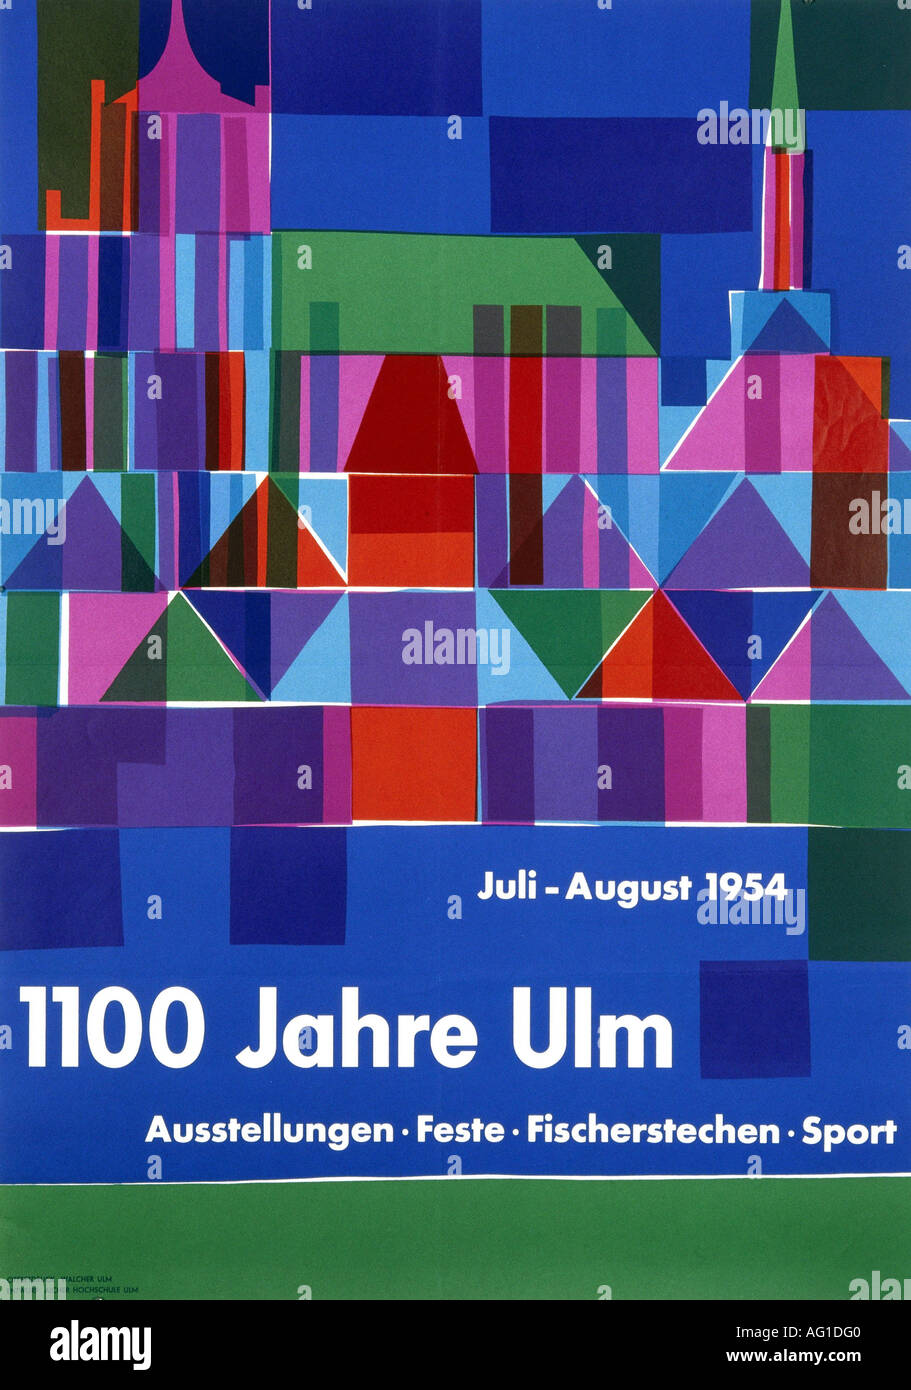 advertising, events, 1100 Jahre Ulm, July - August 1954, poster, design by Otl Aicher (1922 - 1991), historical, historic, Germany, , Additional-Rights-Clearances-NA - Stock Image